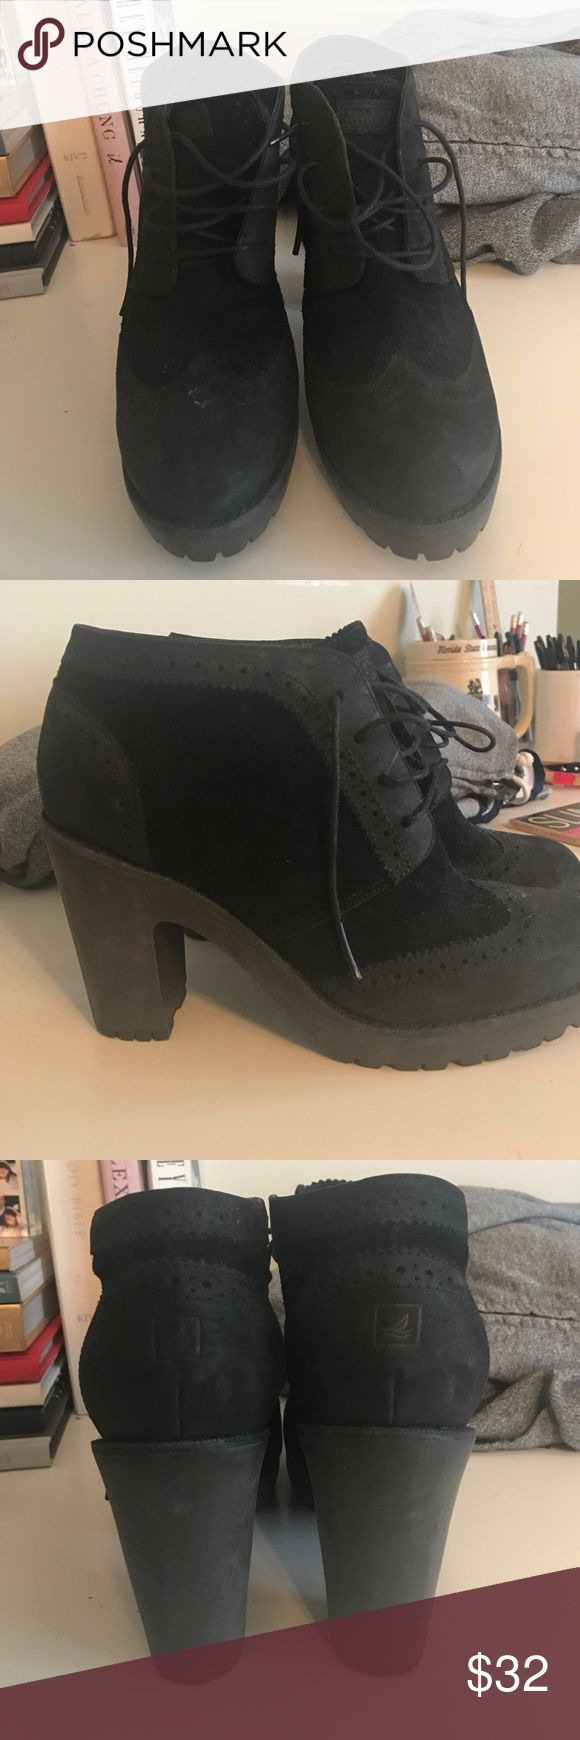 Sperry Bootys Size 7 Black Sperry Heeled Booties / Size 7 / Barely Worn Sperry Top-Sider Shoes Ankle Boots & Booties